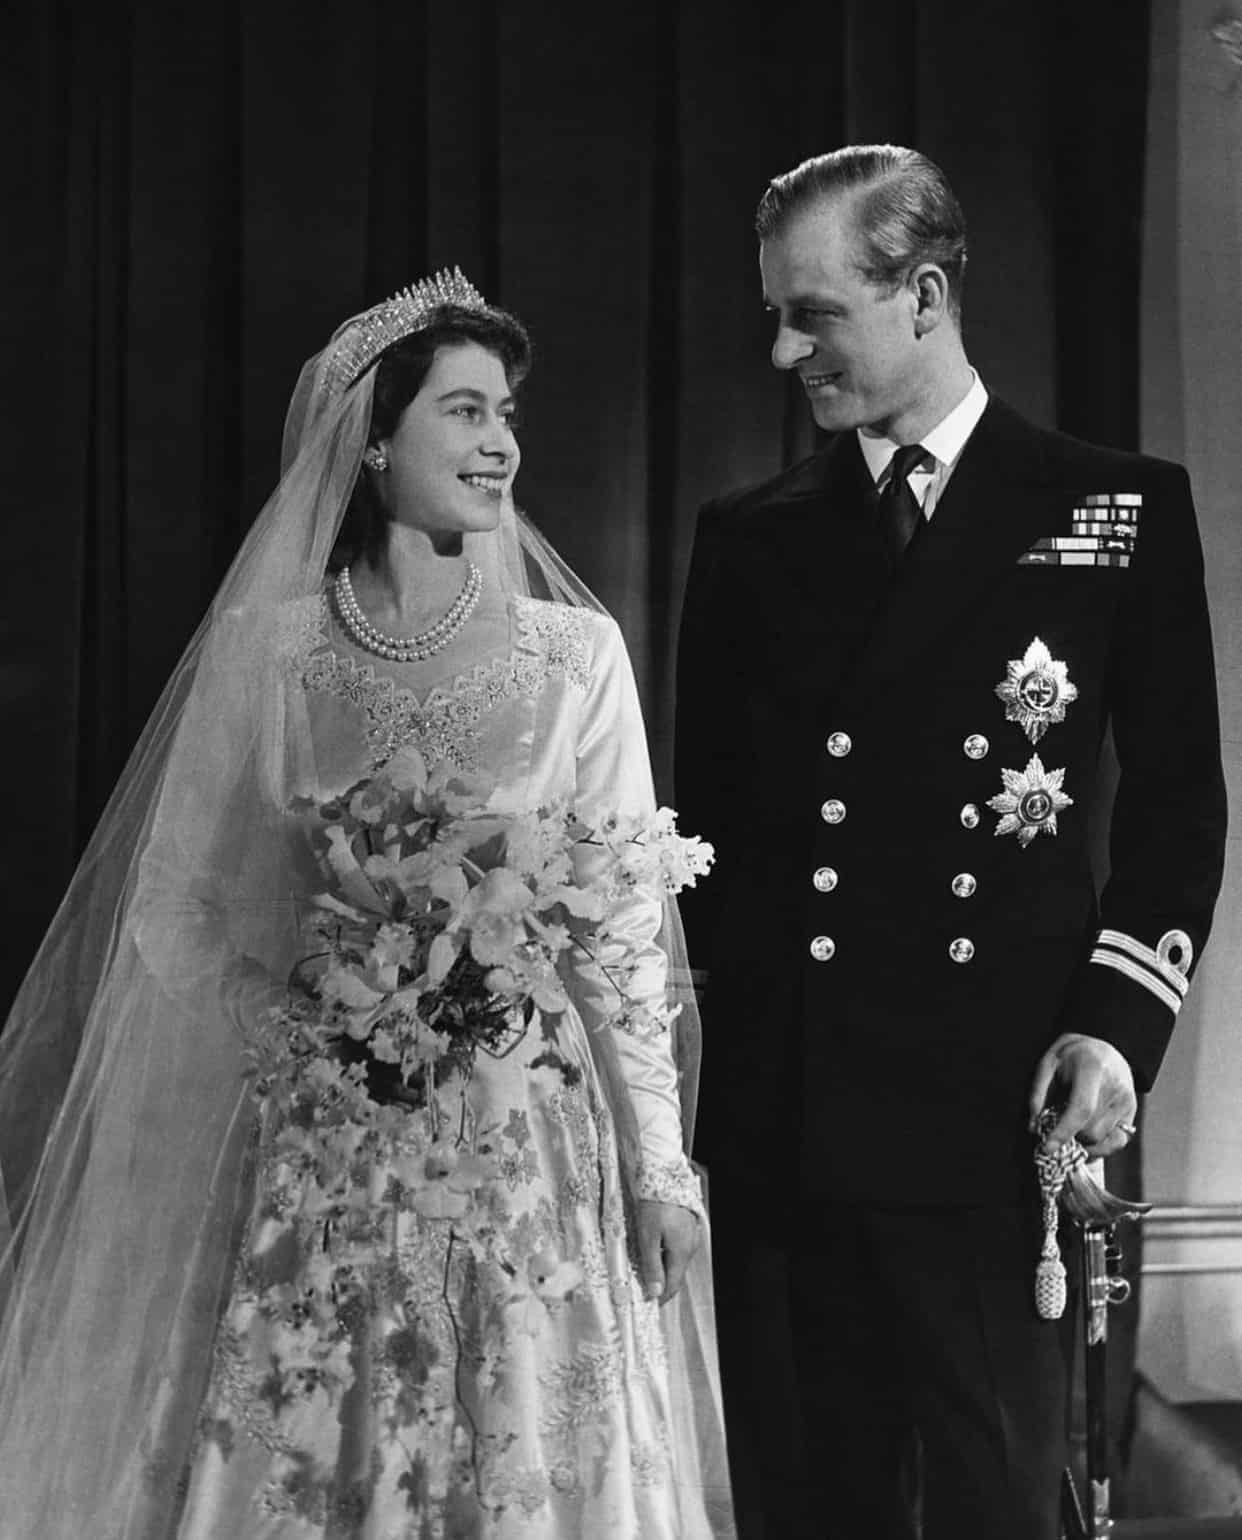 Prince Philip Queen Elizabeth II wedding day